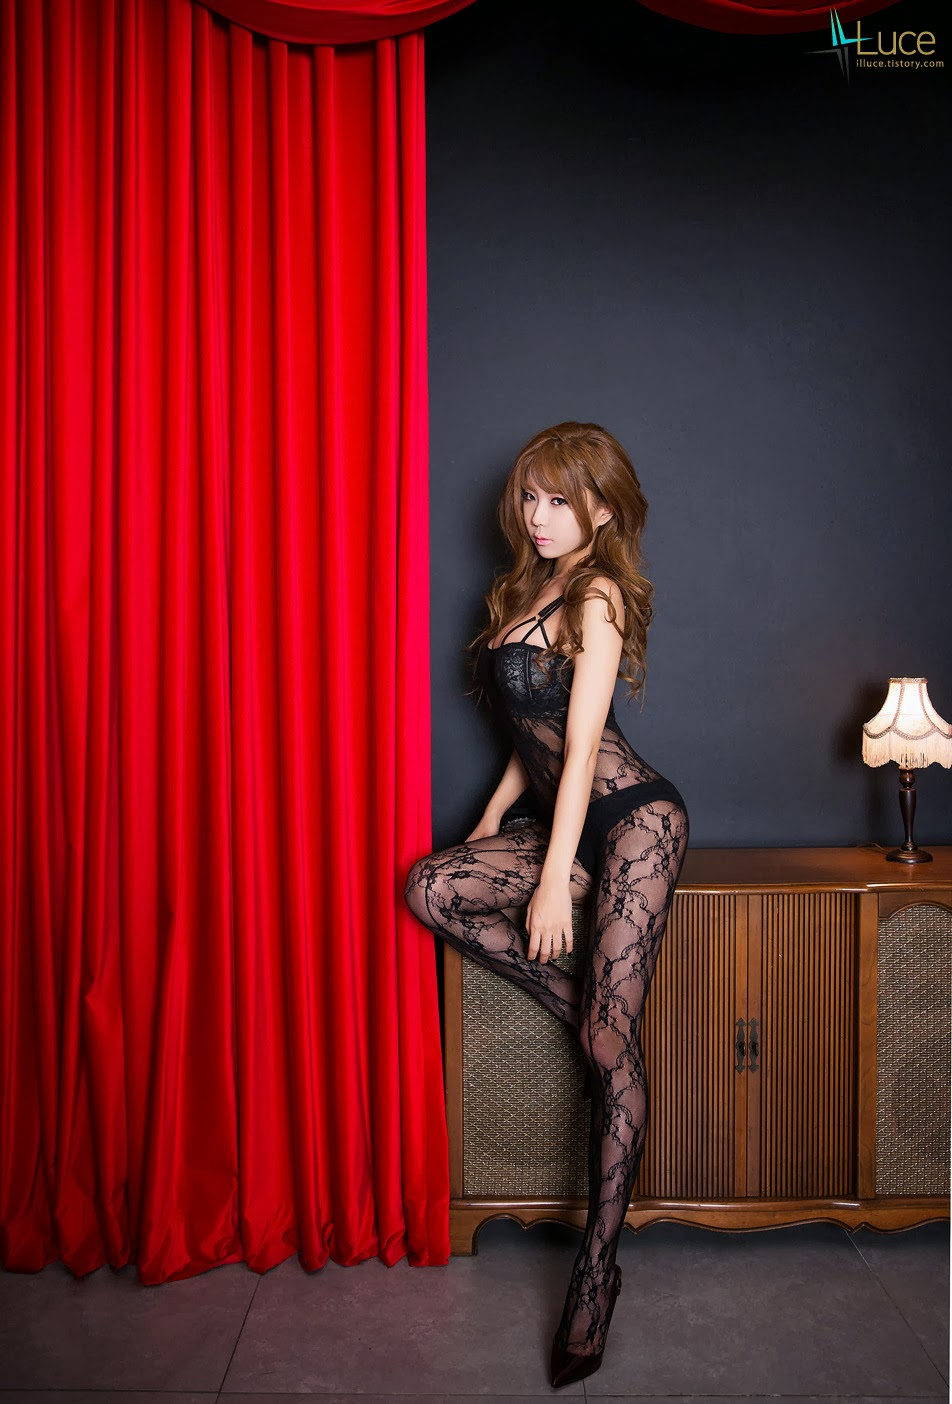 4 Heo Yoon Mi  - very cute asian girl-girlcute4u.blogspot.com